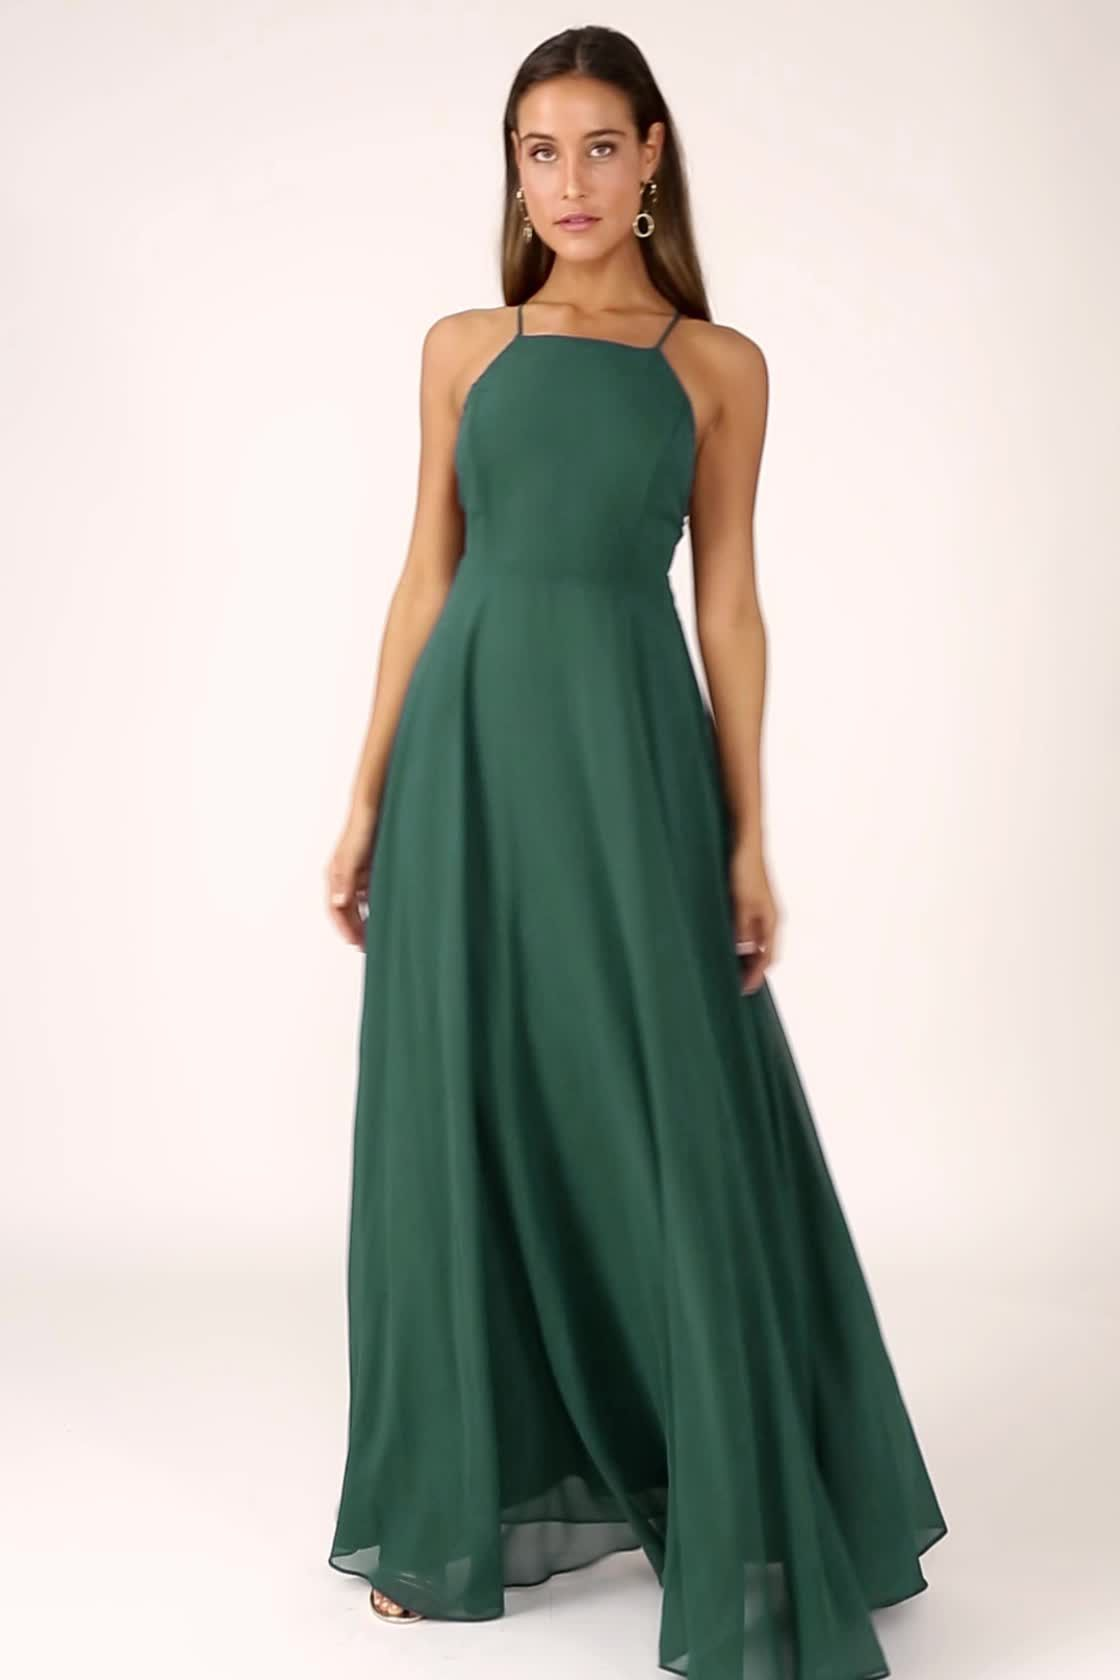 Mythical kind of love dark green maxi dress pinterest green maxi